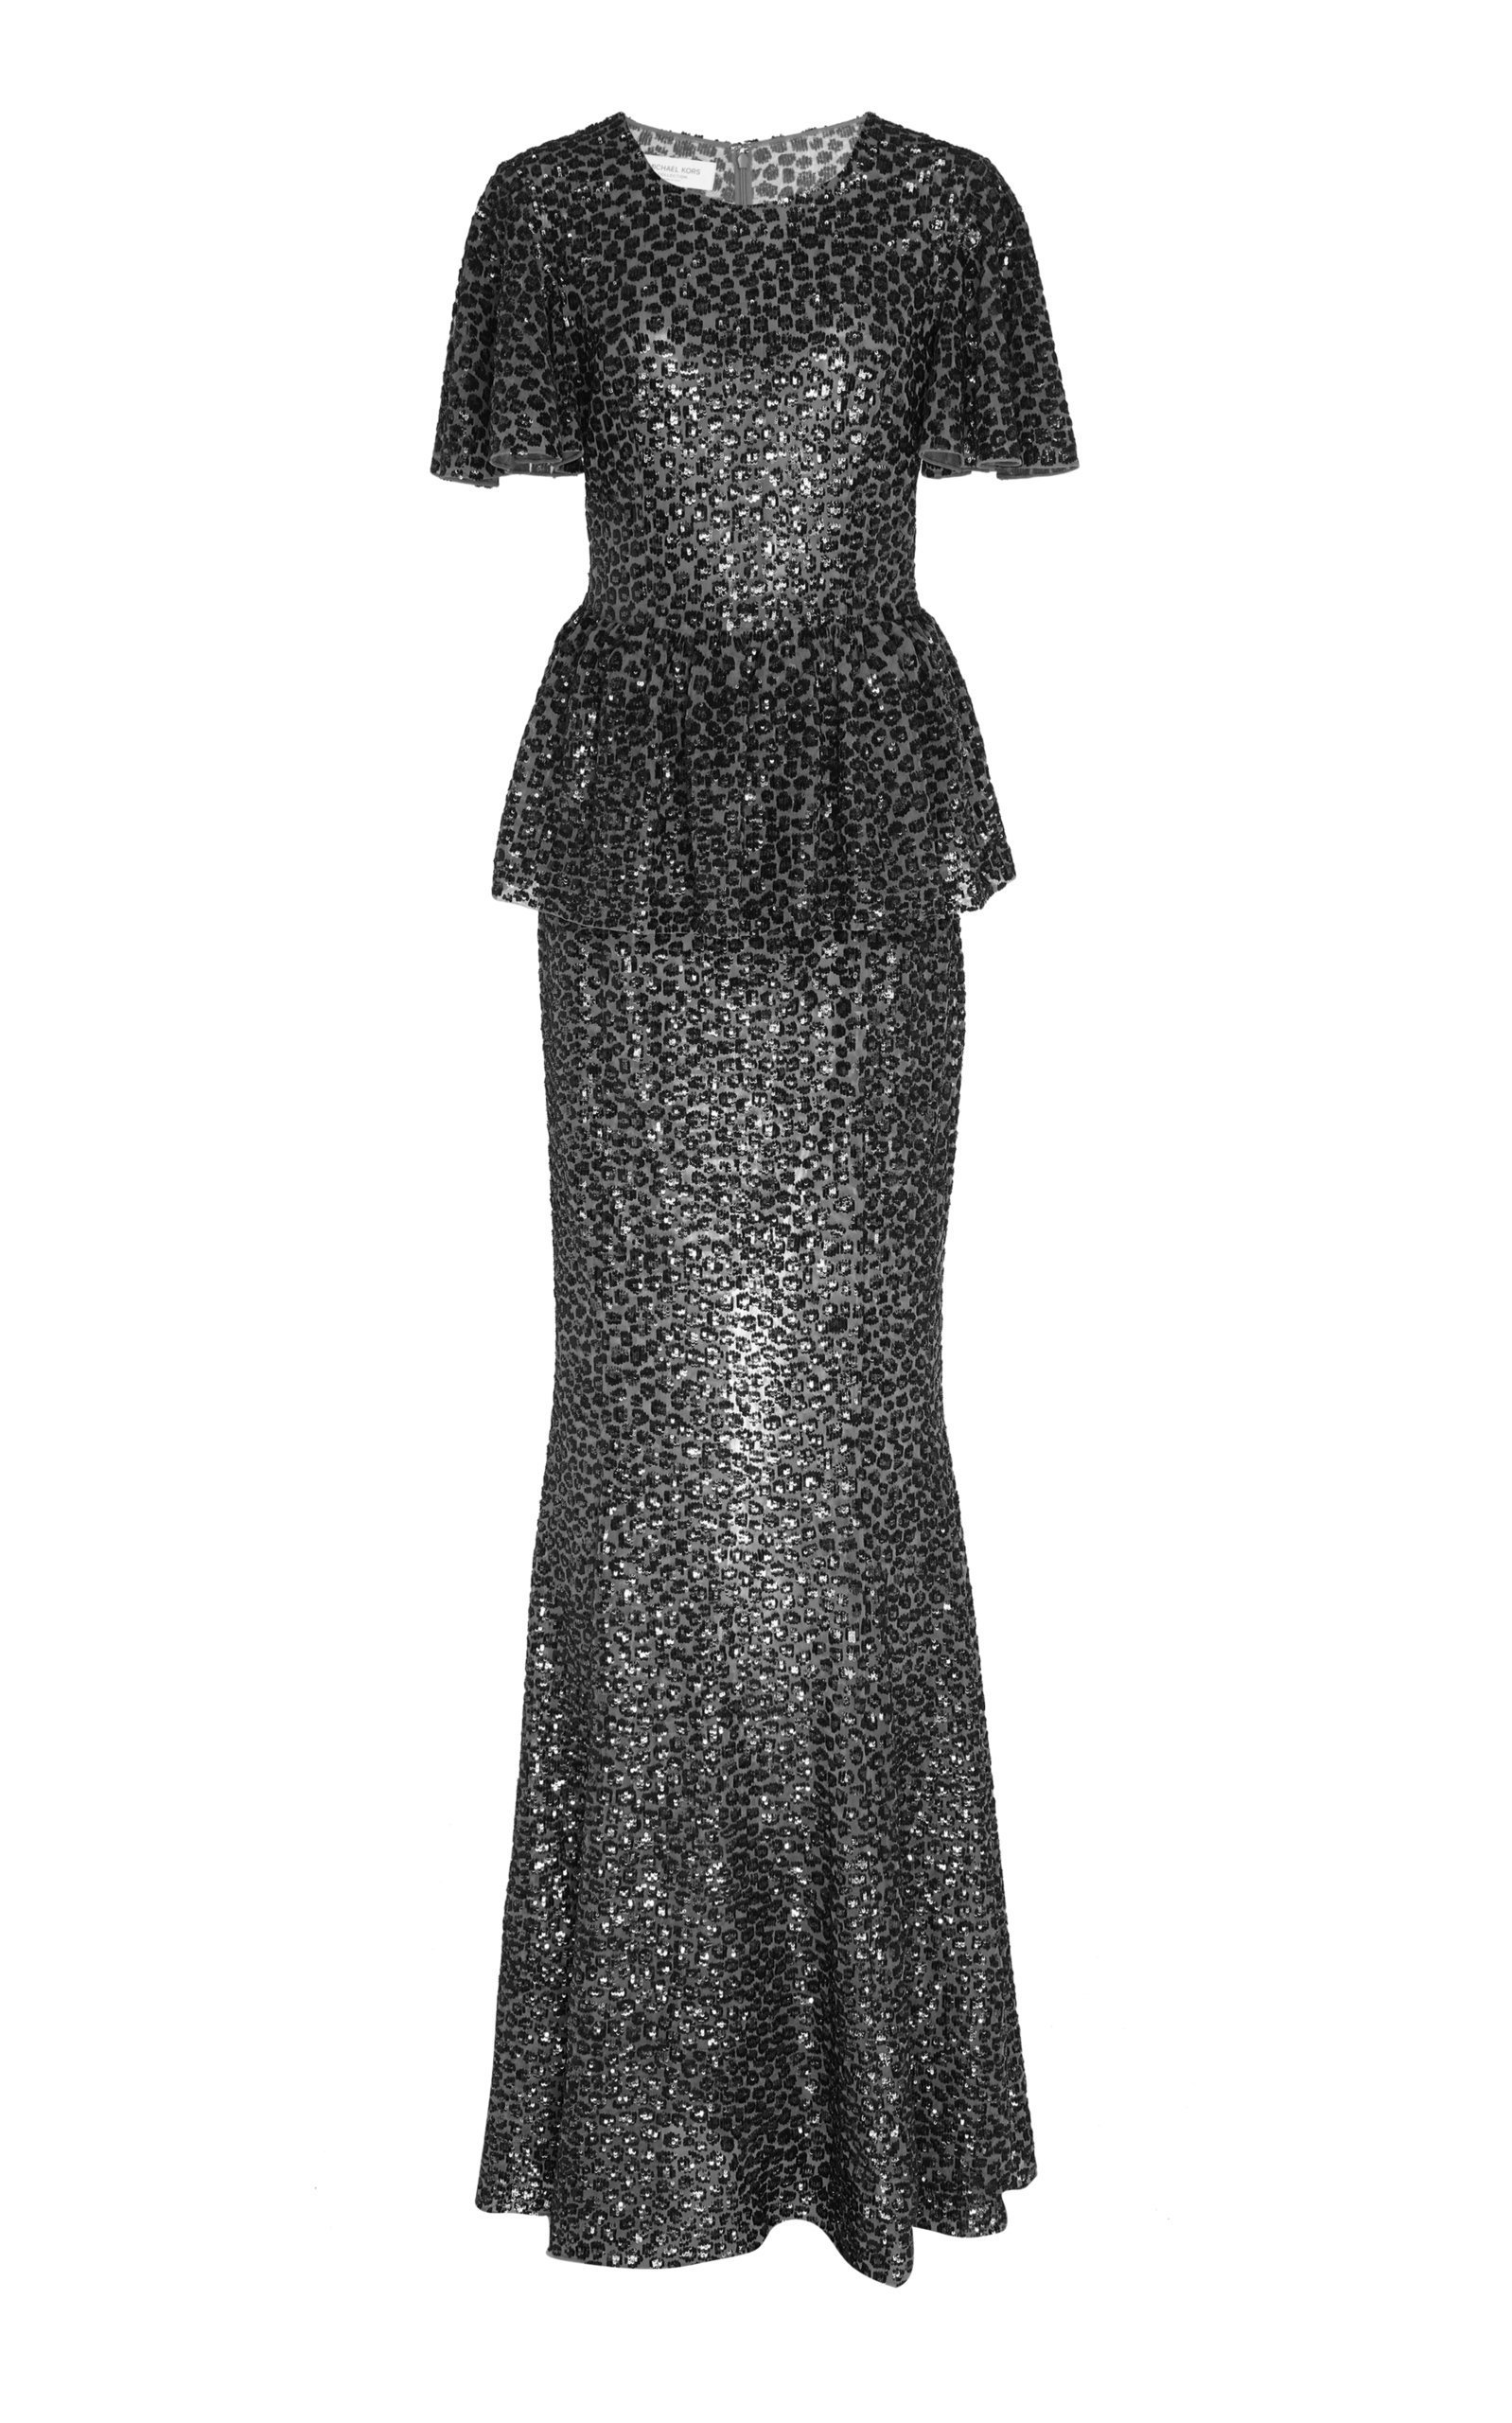 51950f174d84 Michael Kors Collection Sequin-Embellished Peplum Gown   Products in ...